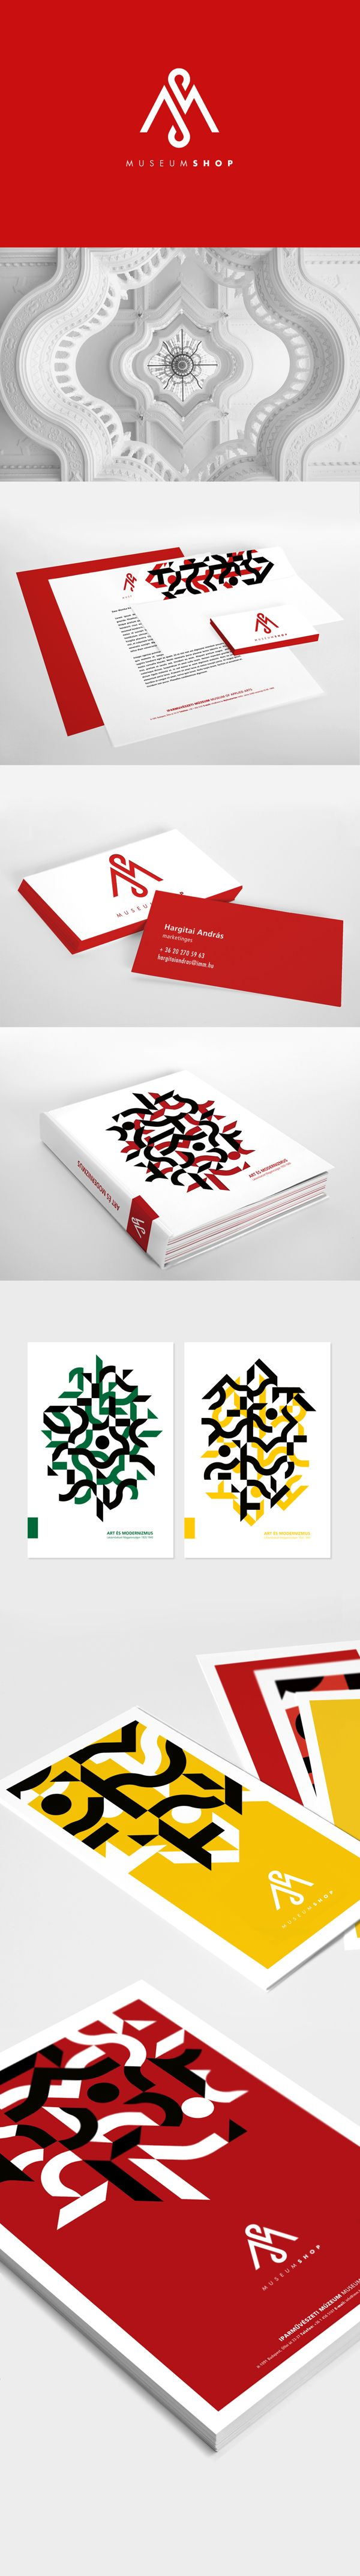 Museum Shop - Museum of Applied Arts by Monika Kovacs, via Behance